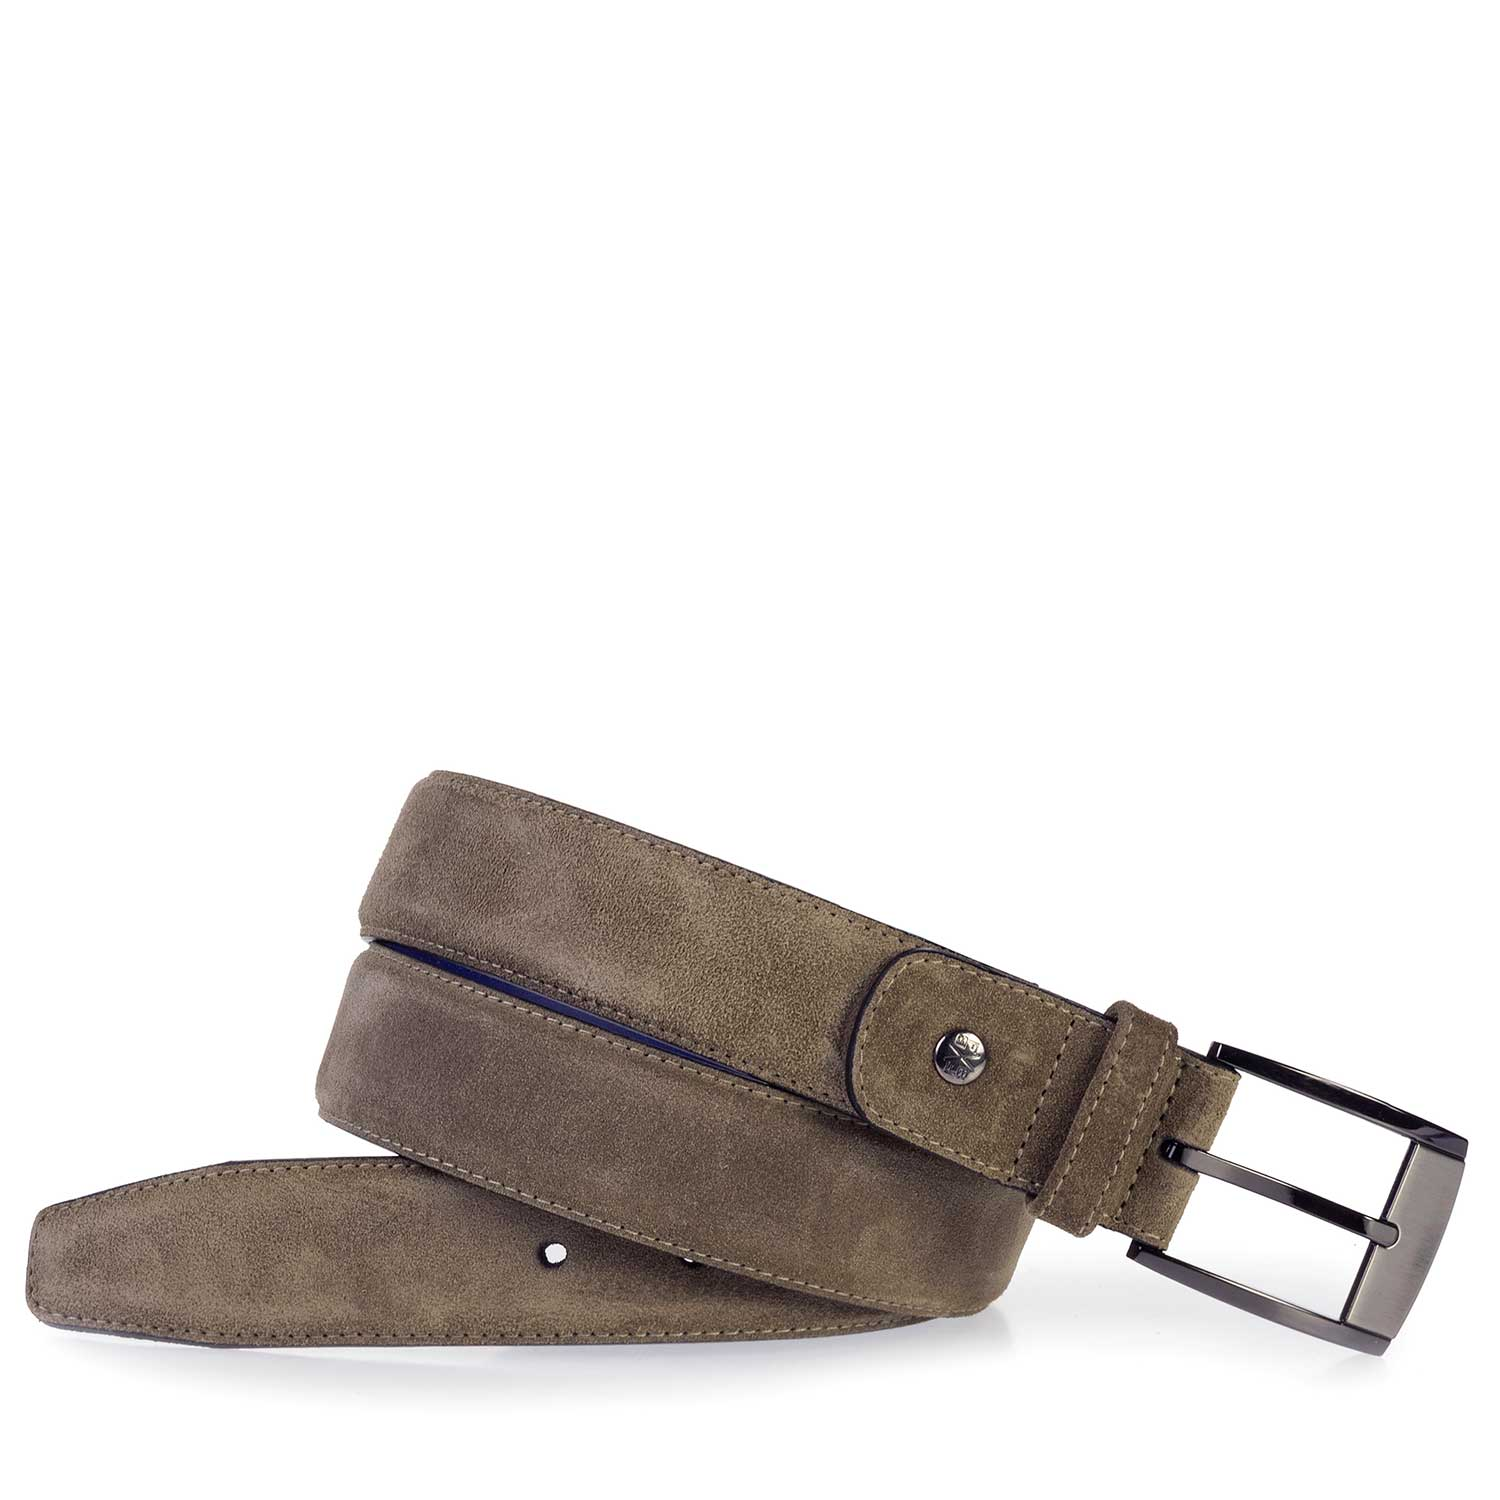 75183/04 - Taupe-coloured suede leather belt